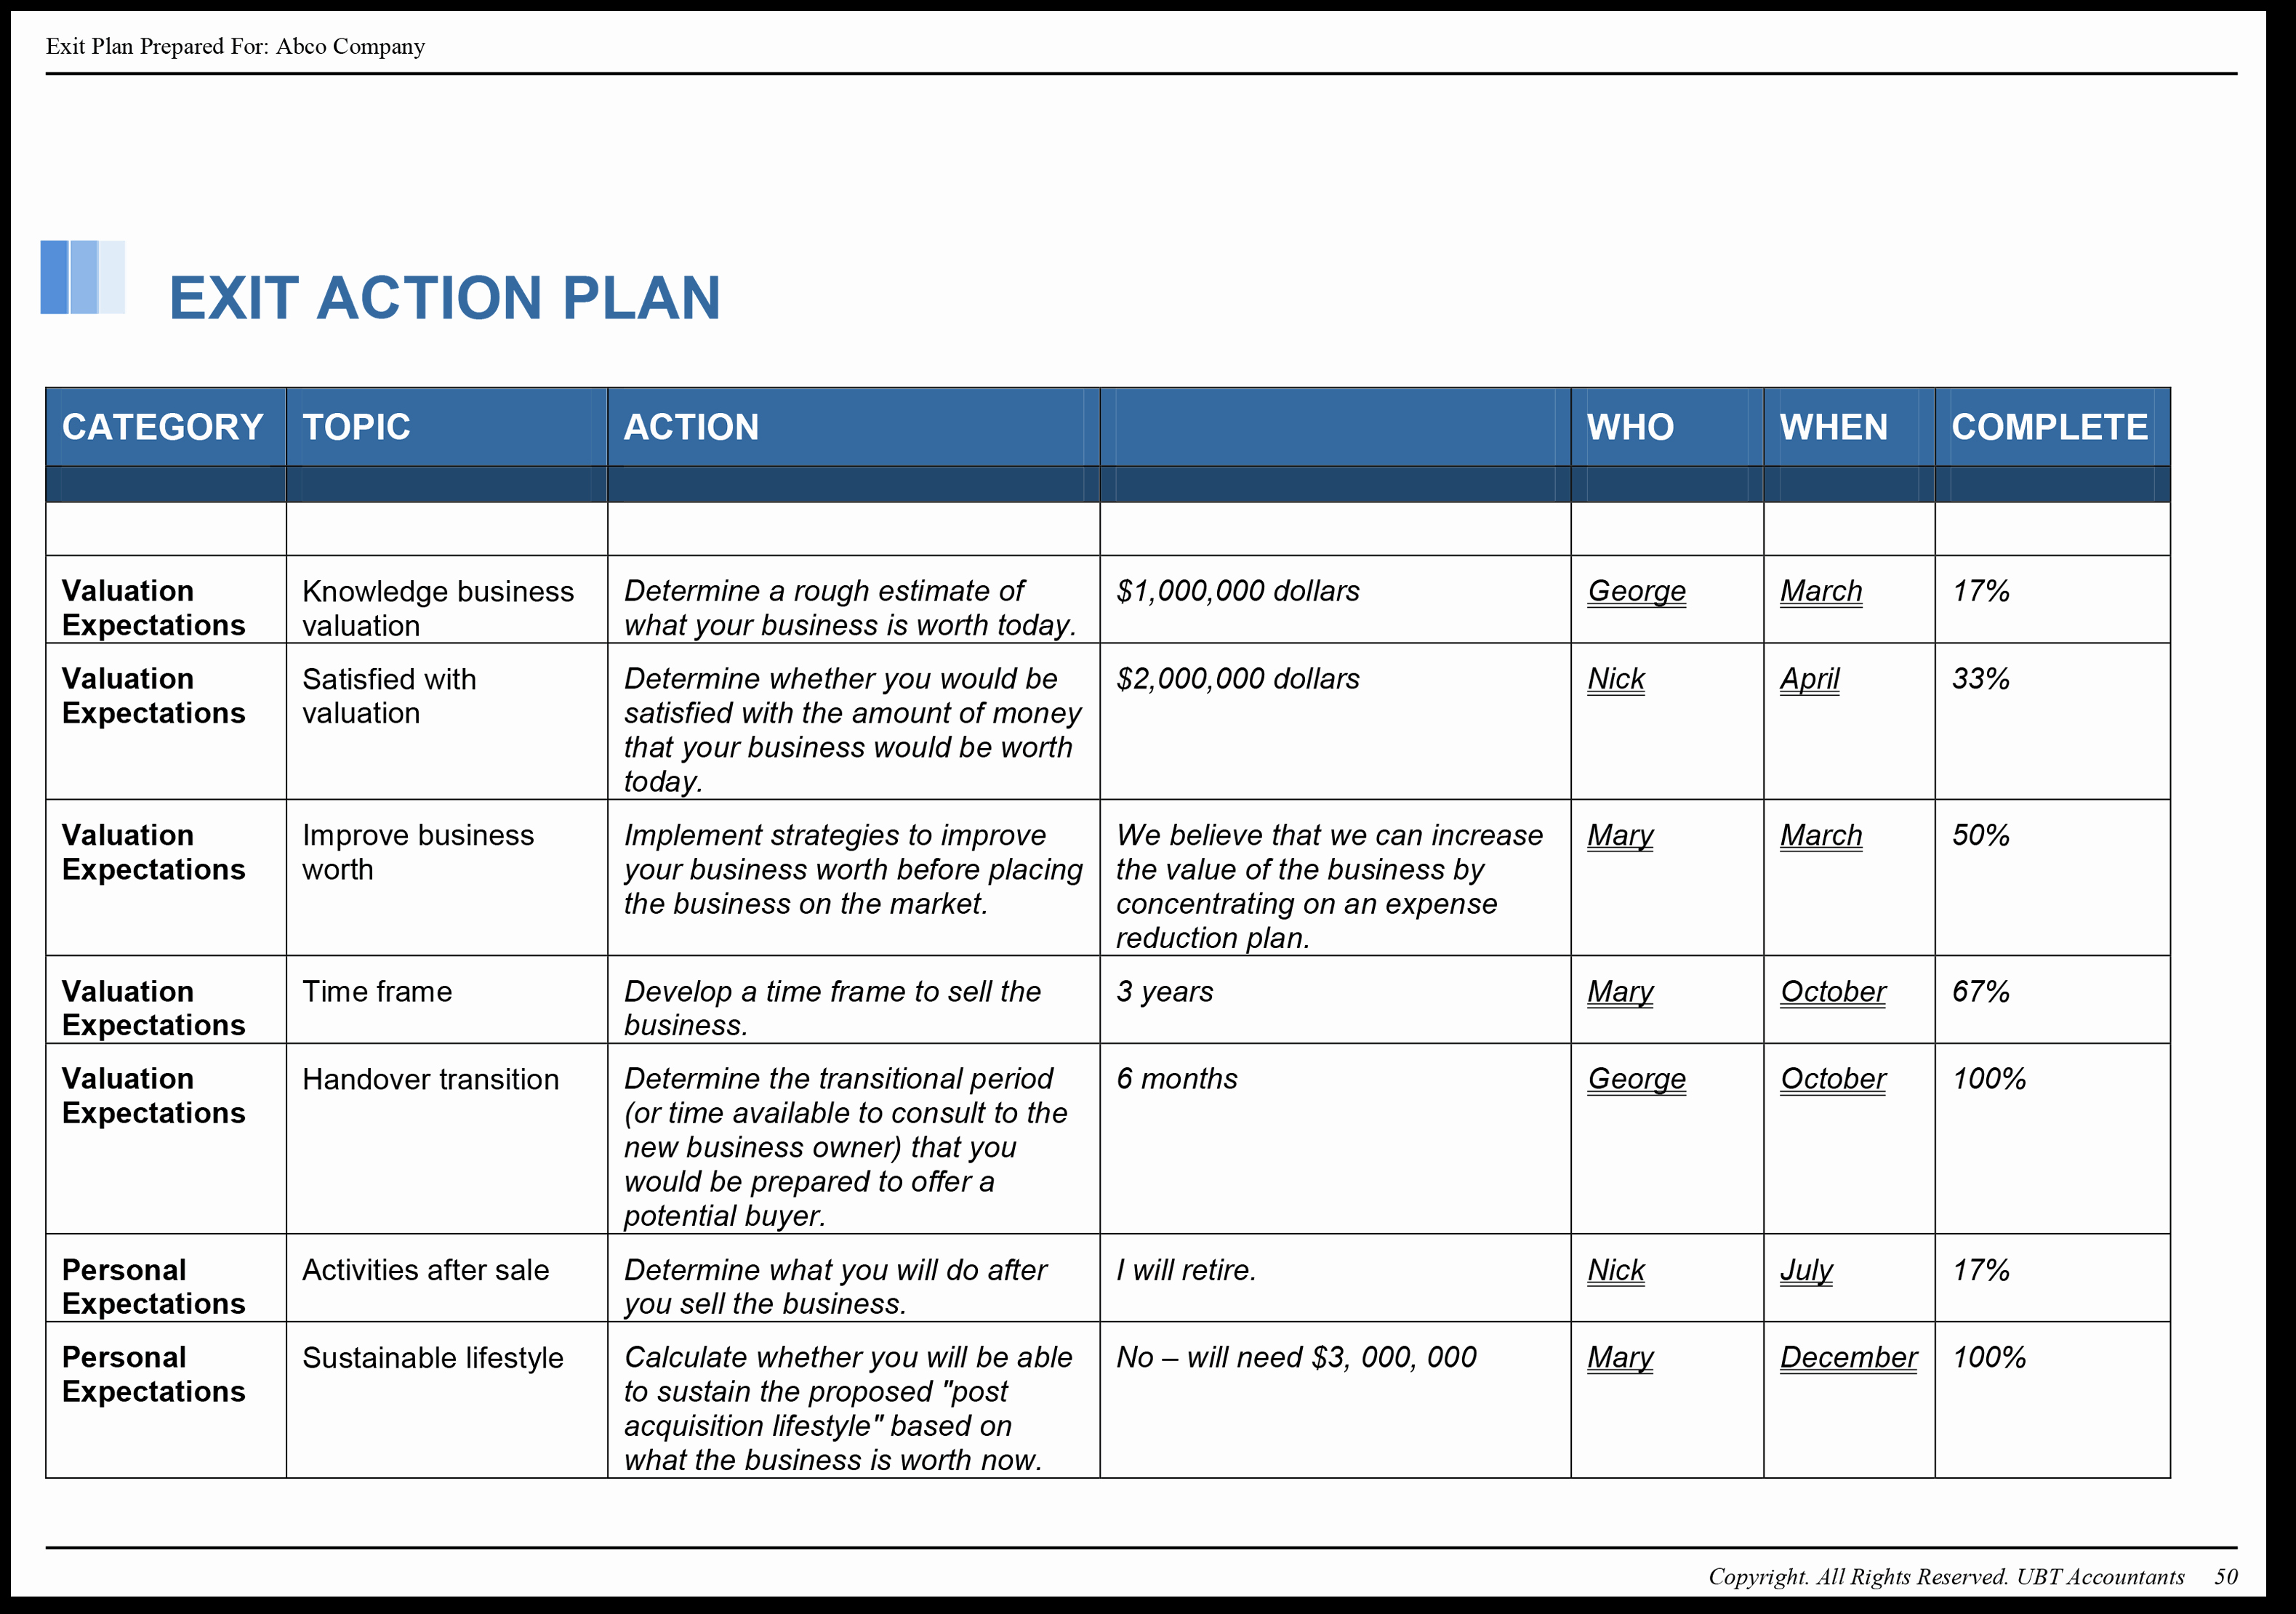 Business Action Plan Template Awesome Maus Valuemax Exit Planning software Maus